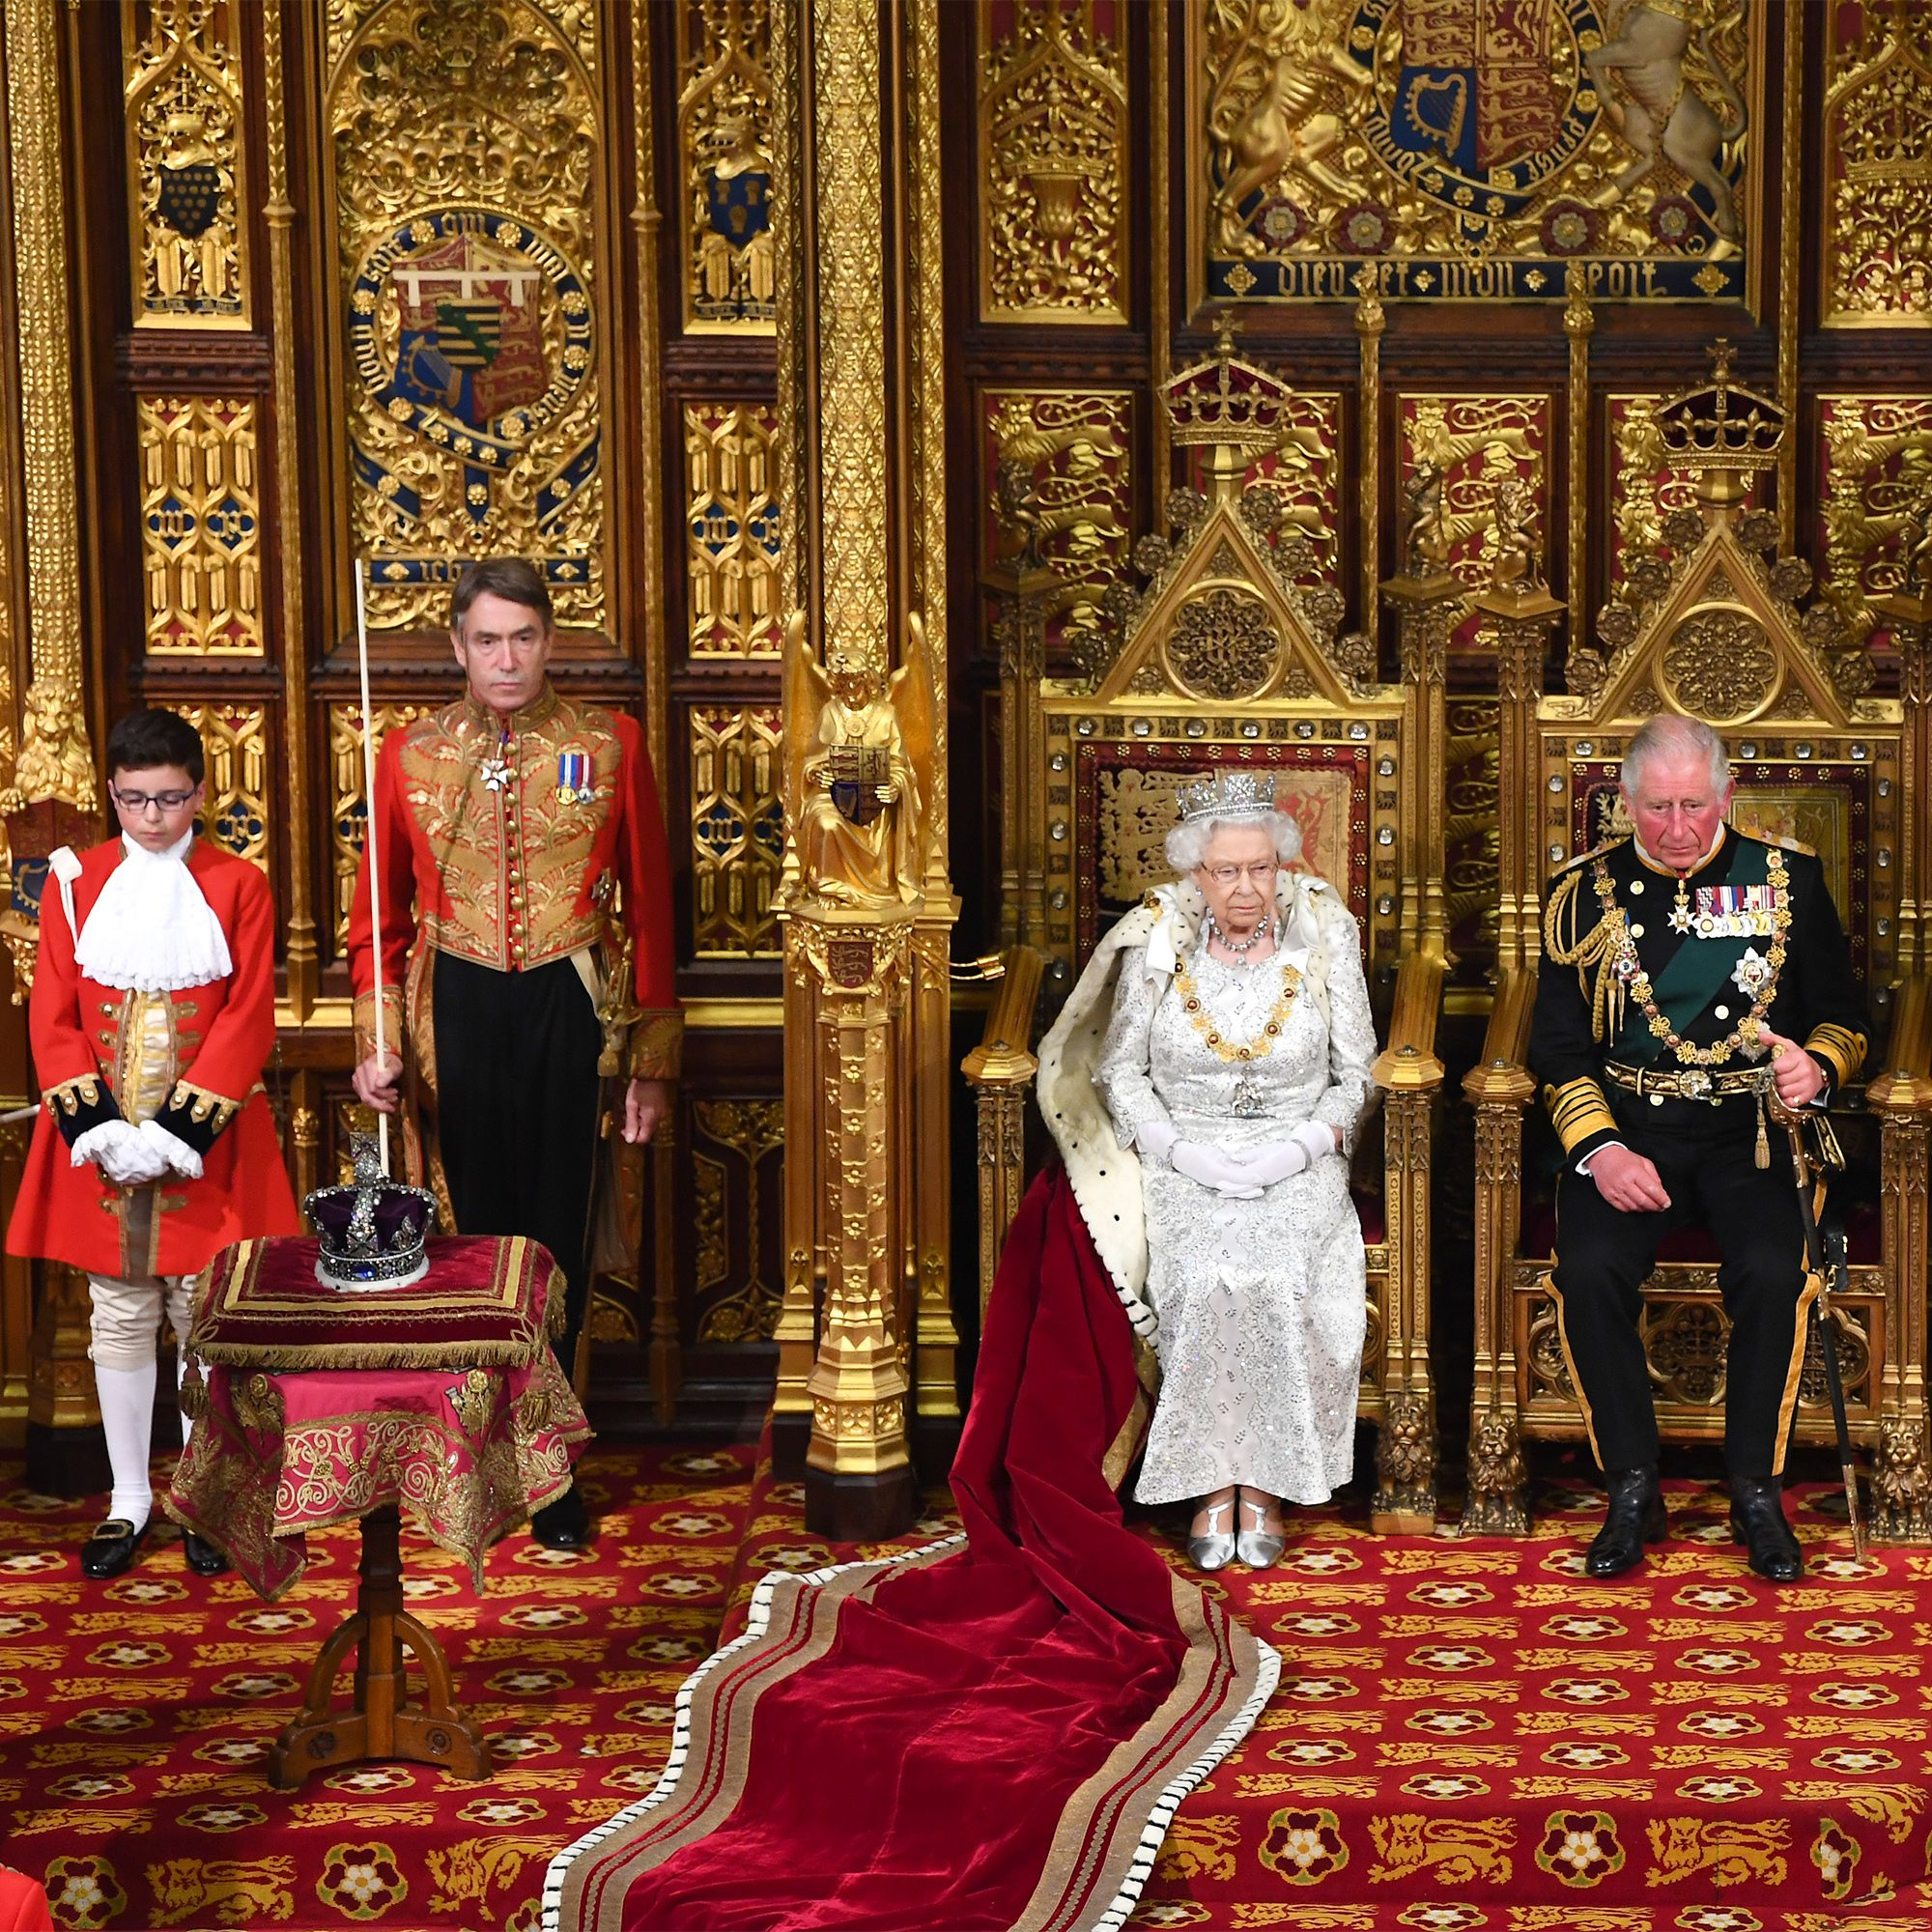 Why Didn't Queen Elizabeth II Wear the Imperial State Crown for the Queen's Speech?